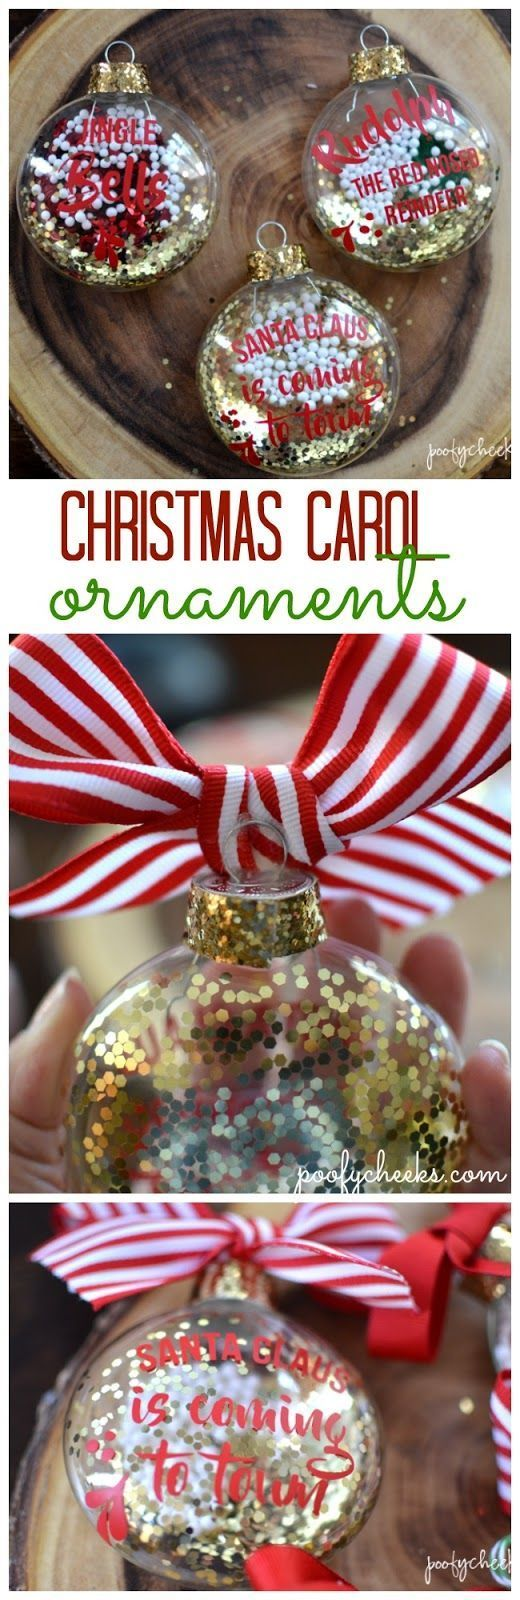 Decorate glass or plastic ornaments with Christmas Carol cut files. Download the free cut files to use with your Cricut or Silhouette machine. #PoleDanceSilhouette